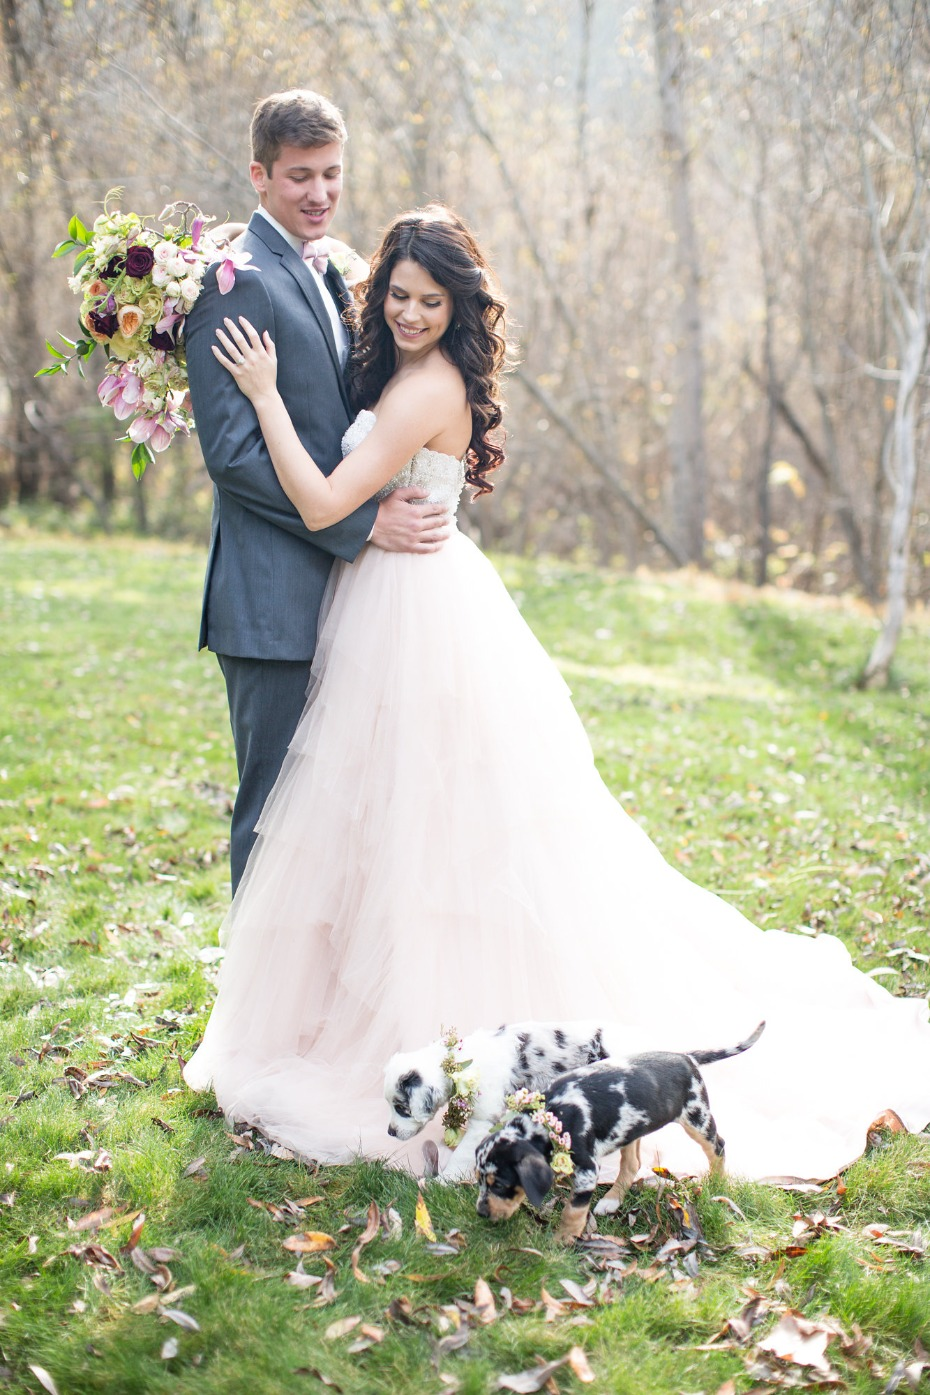 Puppy wedding inspiration